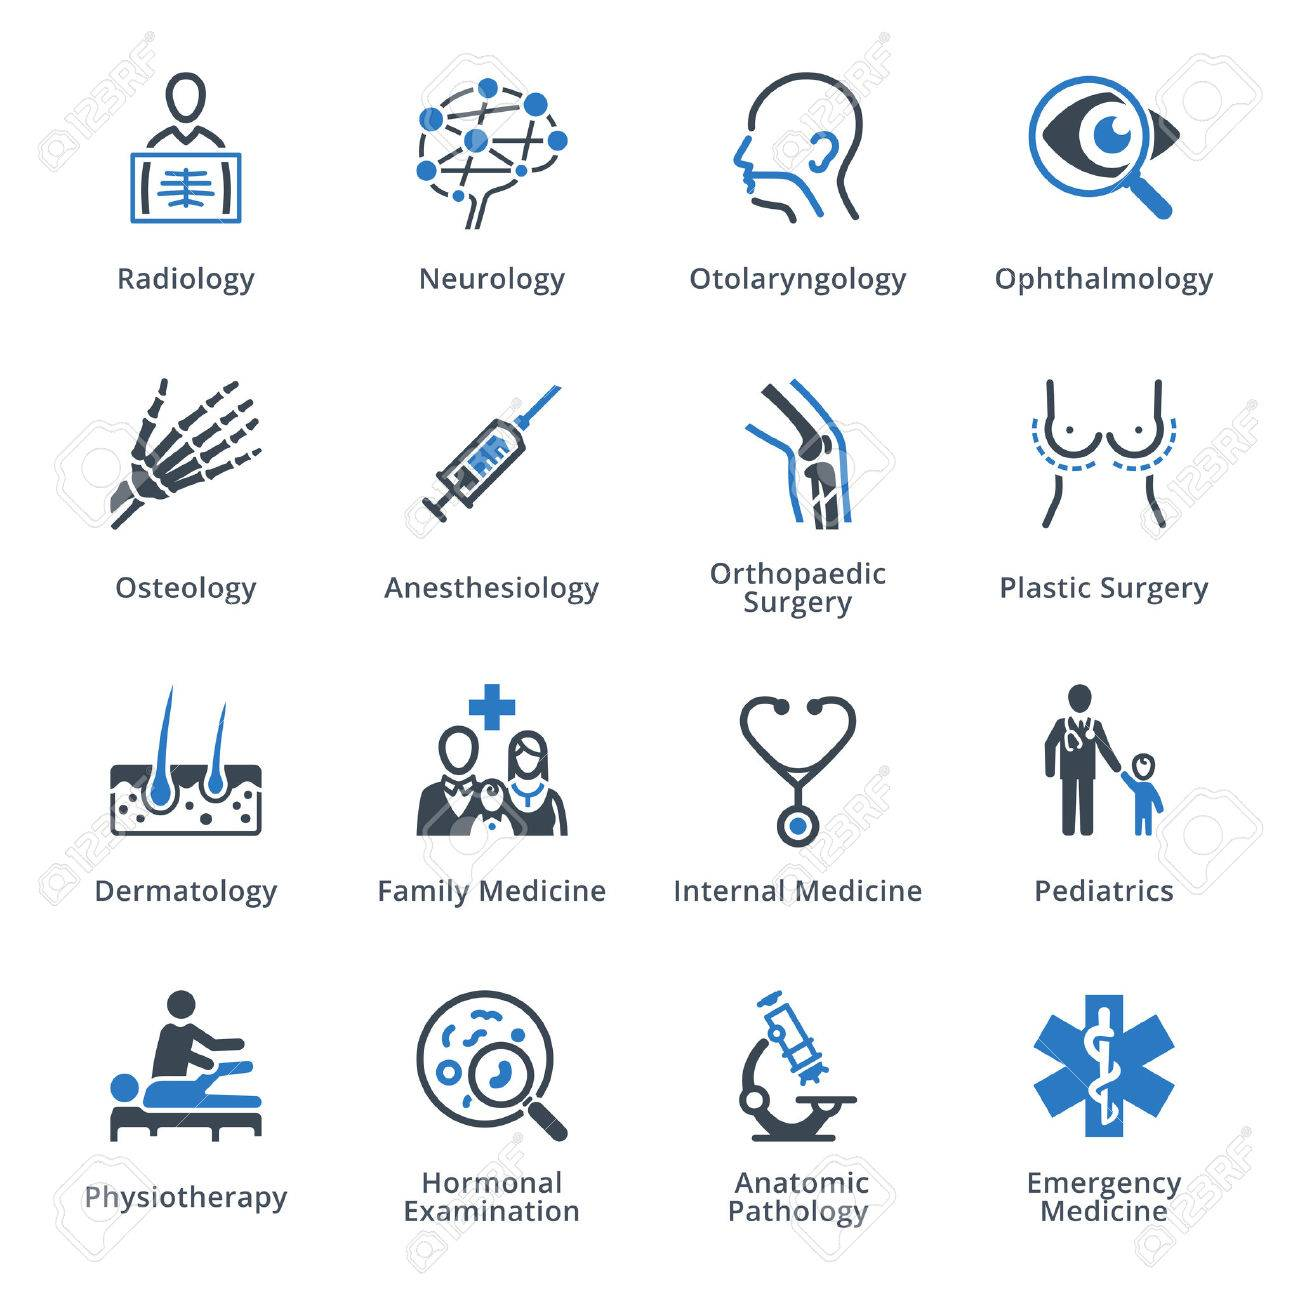 Medical Specialties Icons Set 3 - Blue Series - 59198797